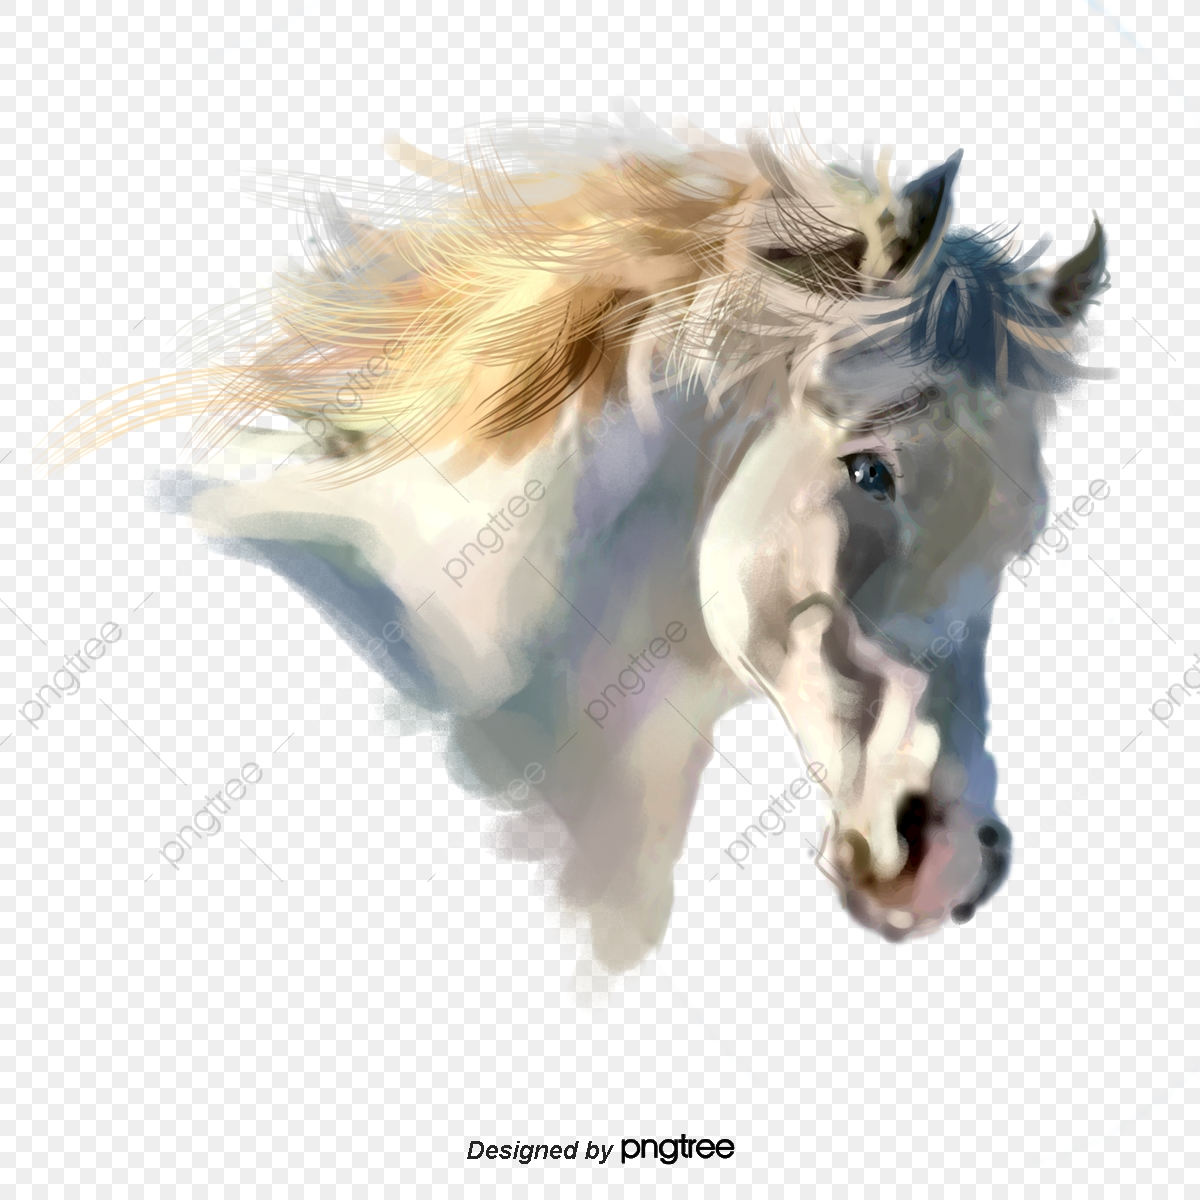 White Horse Head Elements Horse Clipart Element Running Png Transparent Clipart Image And Psd File For Free Download